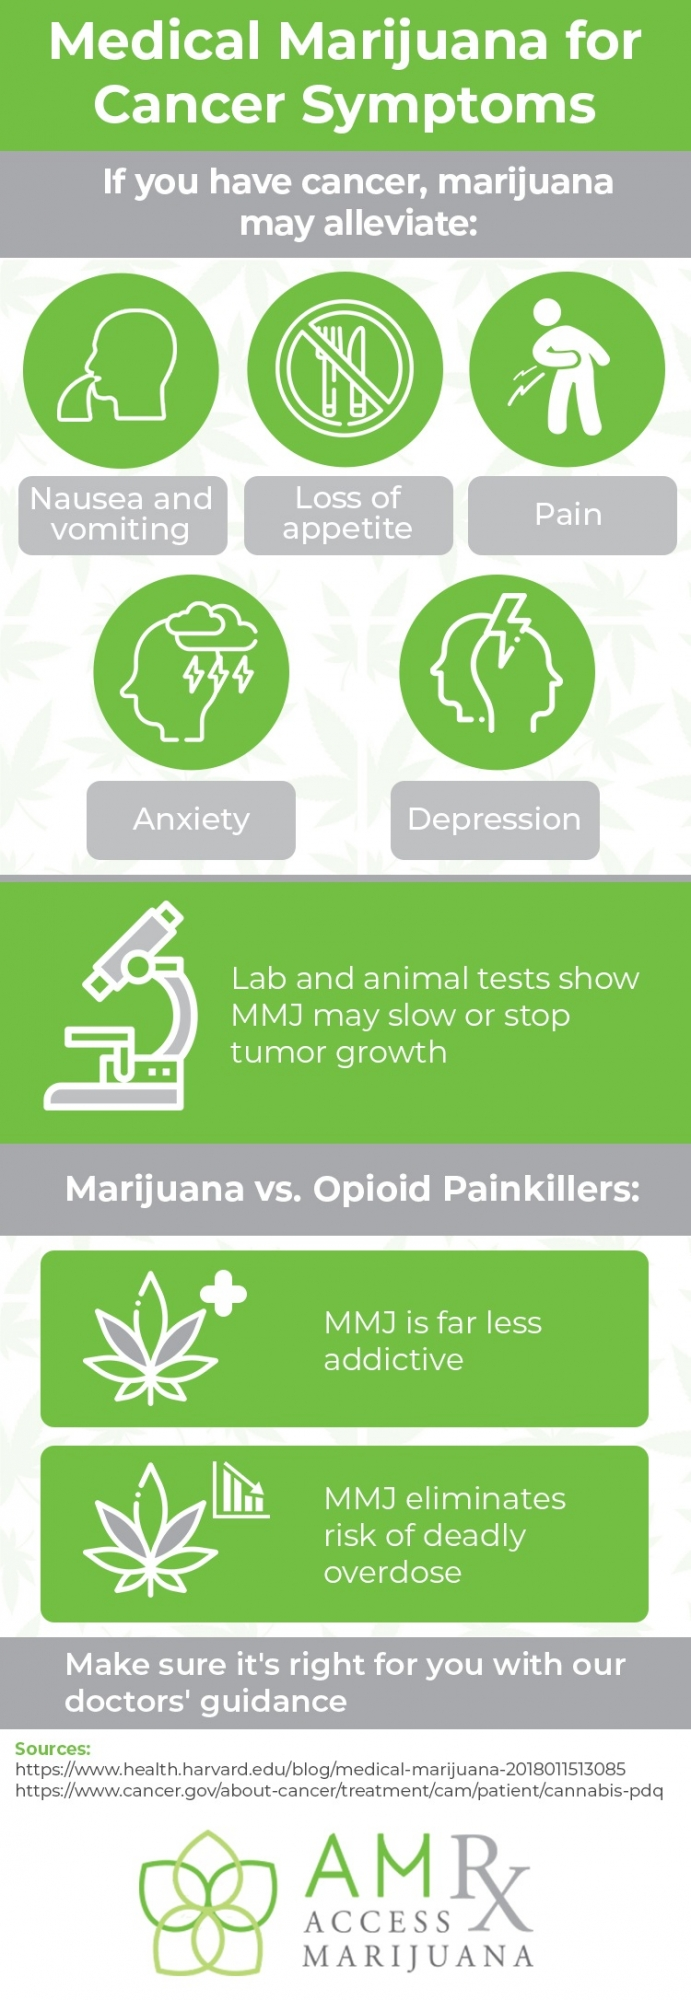 Infographic showing how cannabis may alleviate cancer symptoms